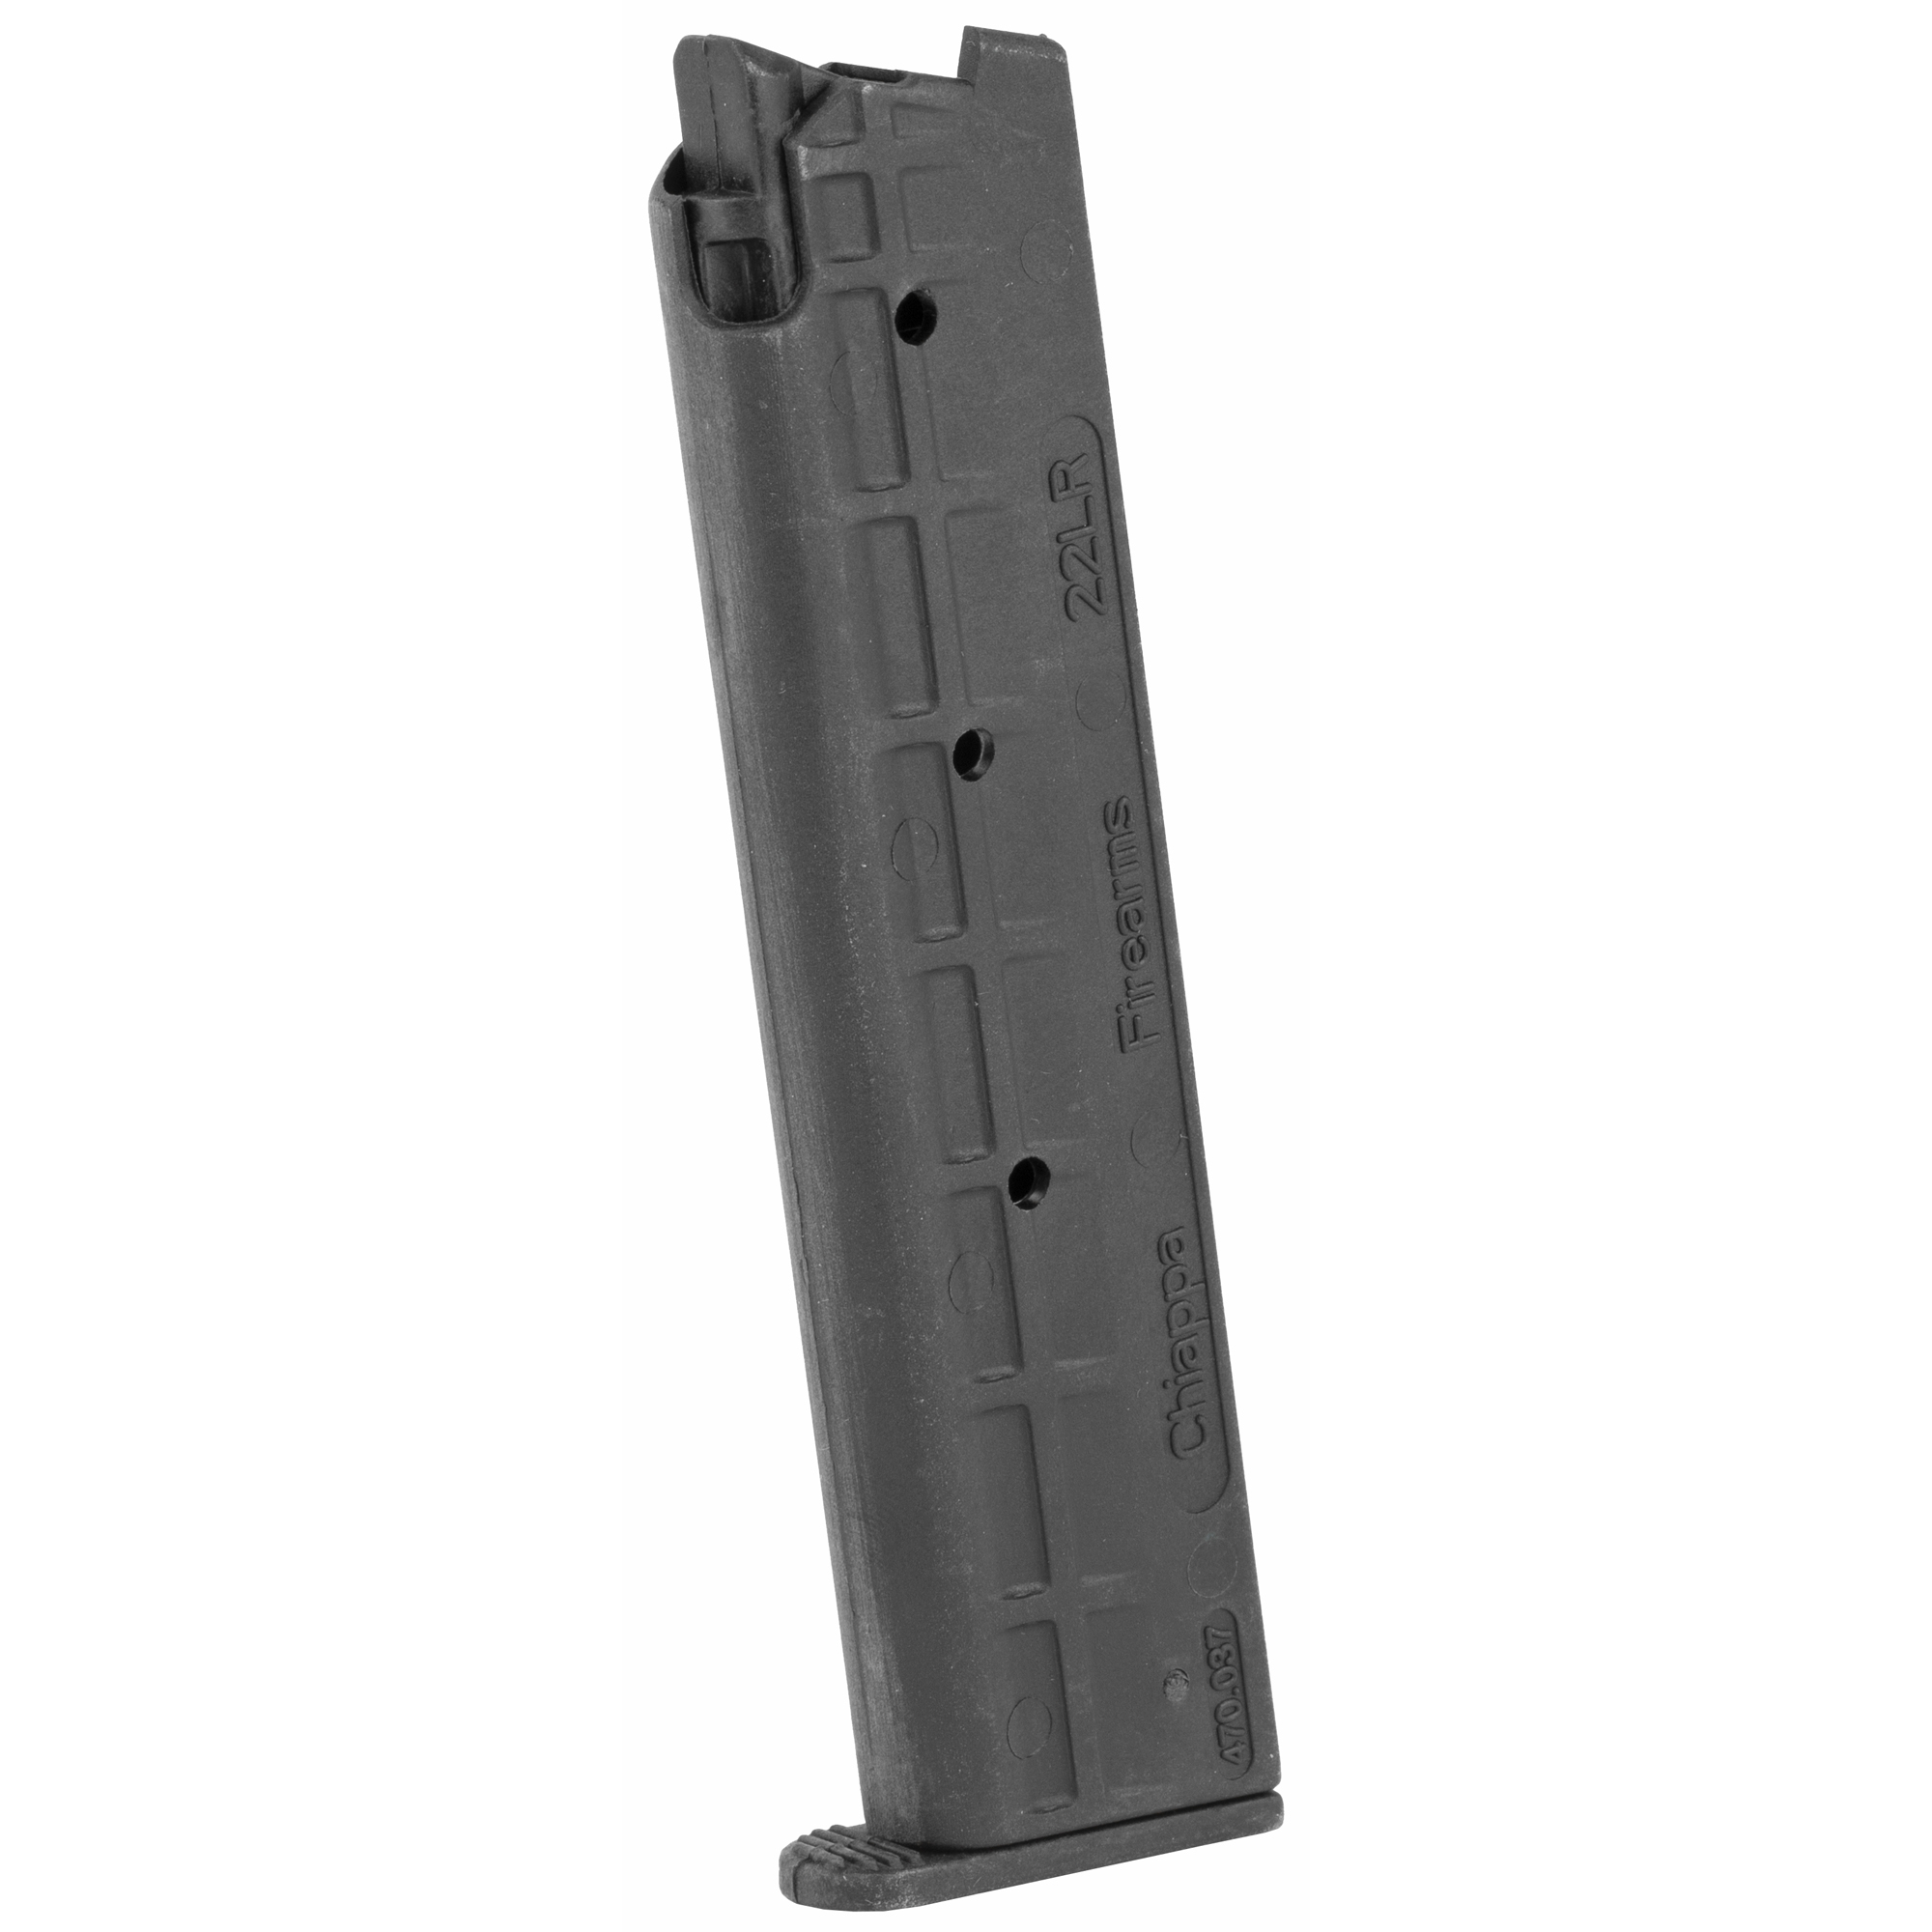 The Chiappa M1911-22 Magazine is a standard factory replacement magazine. This magazine is for M1911 models chambered in .22 Long Rifle and holds 10 rounds of ammunition.